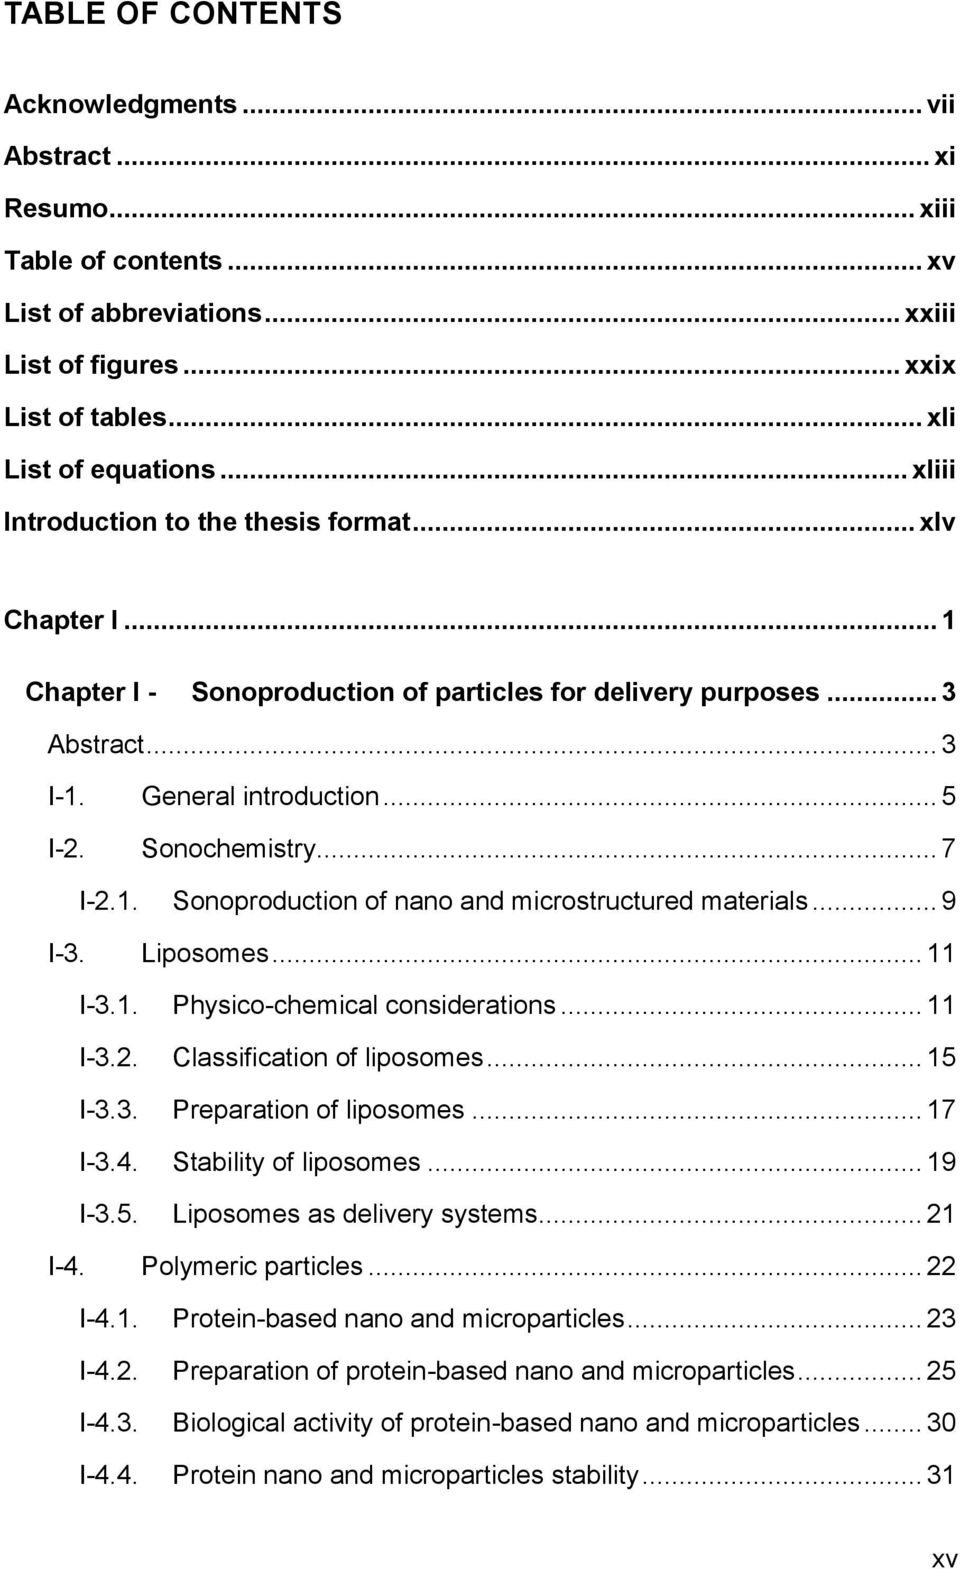 .. 7 I-2.1. Sonoproduction of nano and microstructured materials... 9 I-3. Liposomes... 11 I-3.1. Physico-chemical considerations... 11 I-3.2. Classification of liposomes... 15 I-3.3. Preparation of liposomes.